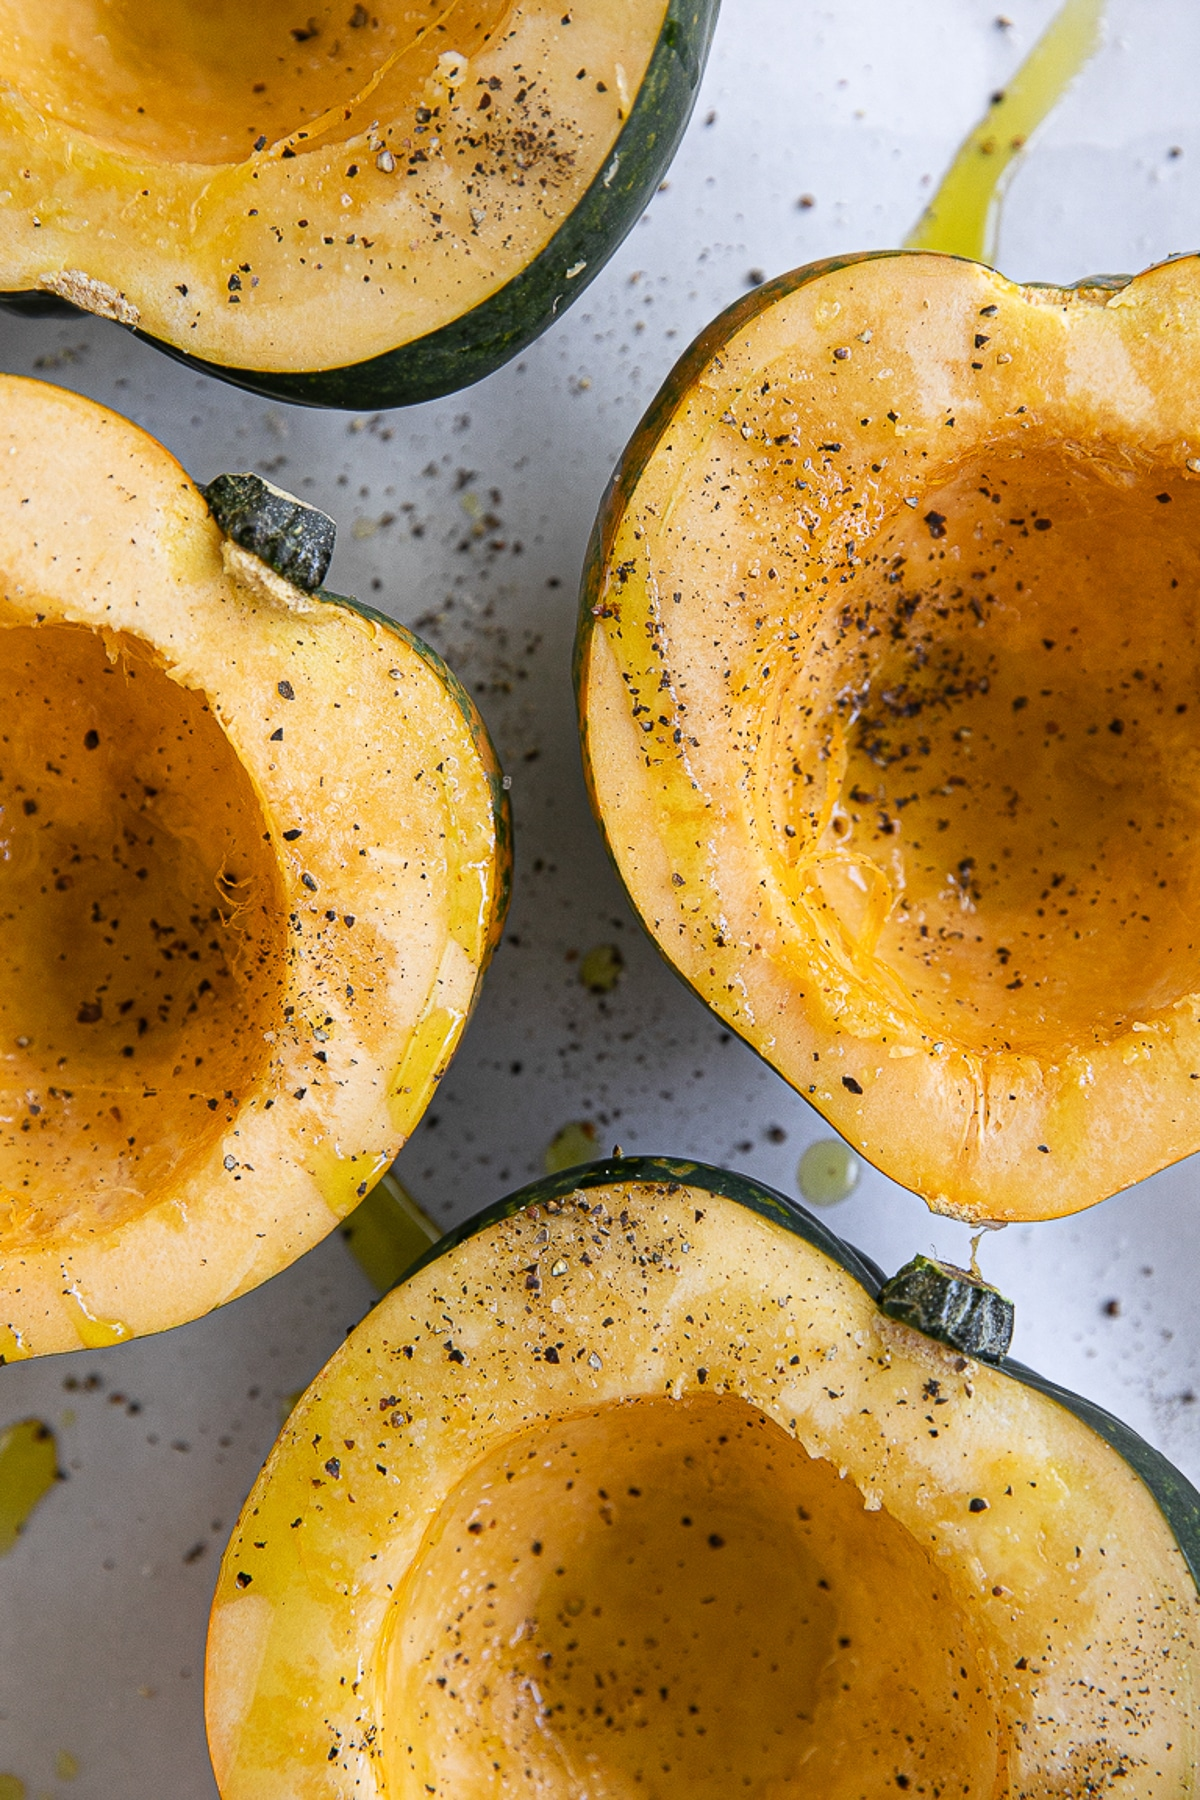 Raw halves of acorn squash on a baking sheet drizzled with olive oil and sprinkled with salt and pepper.